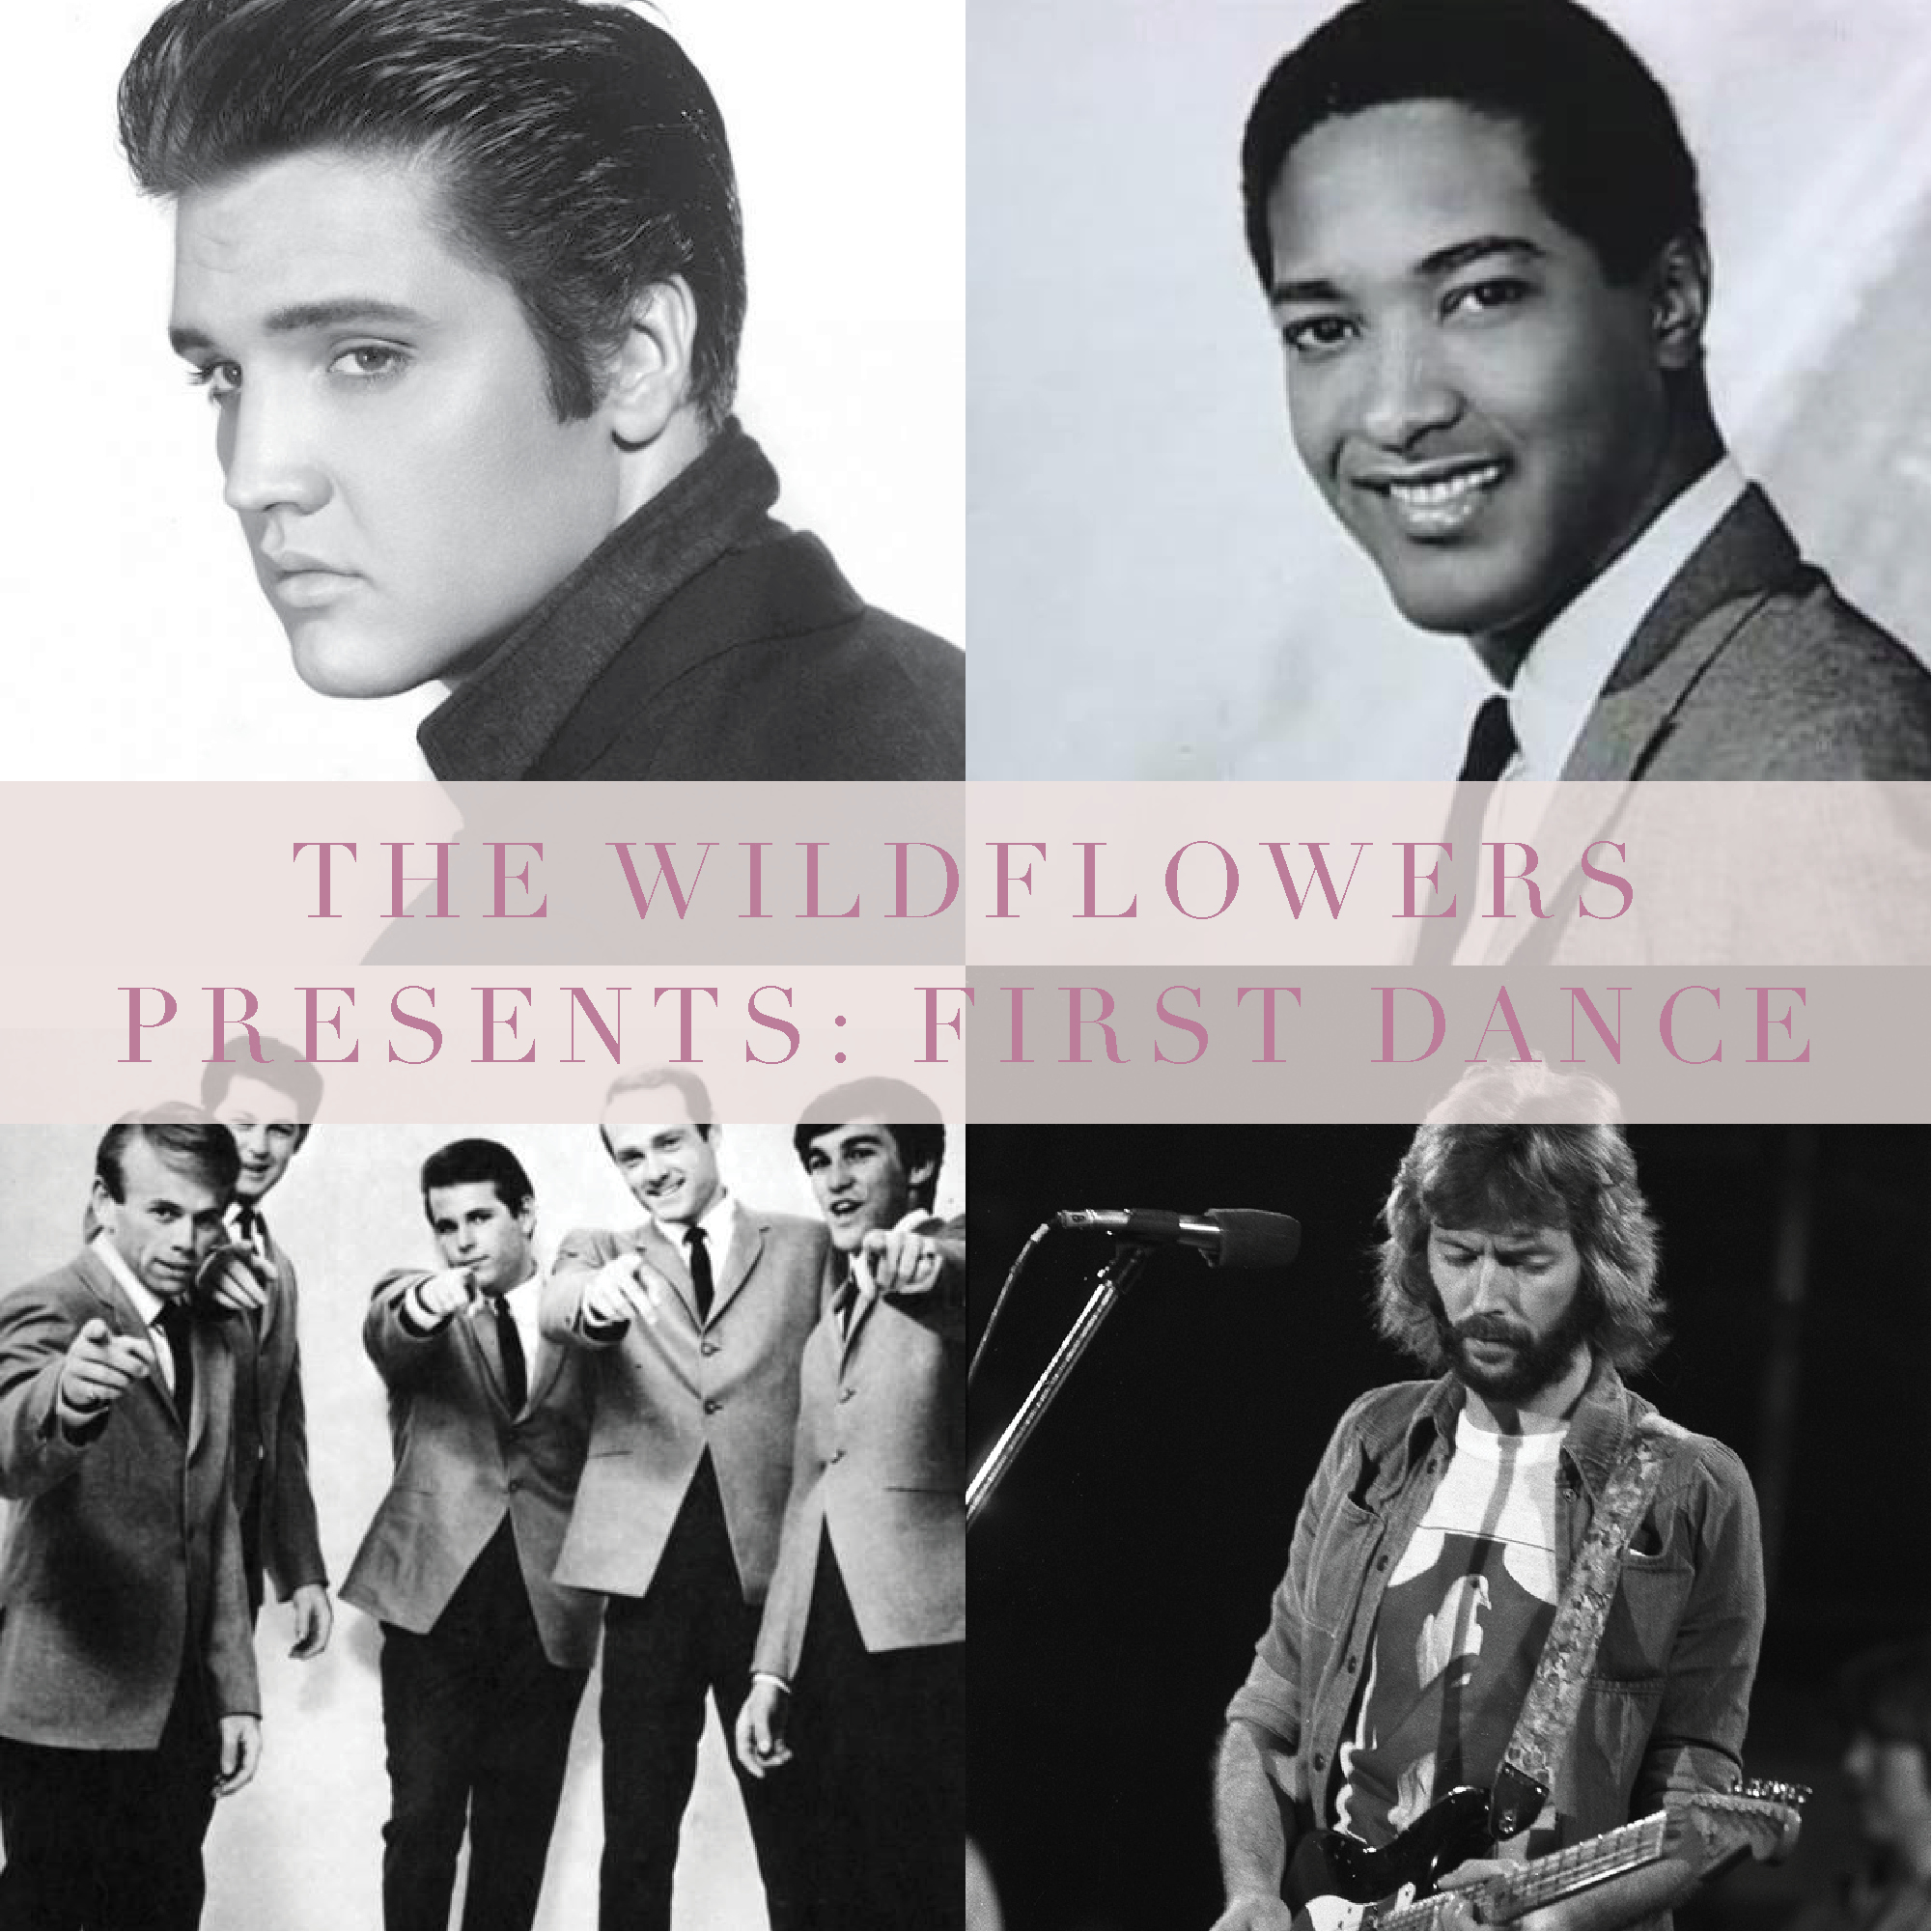 The Cool Bride's Guide to Wedding Music: First Dance by The Wildflowers | follow us on instagram: @ thewildflowers_com